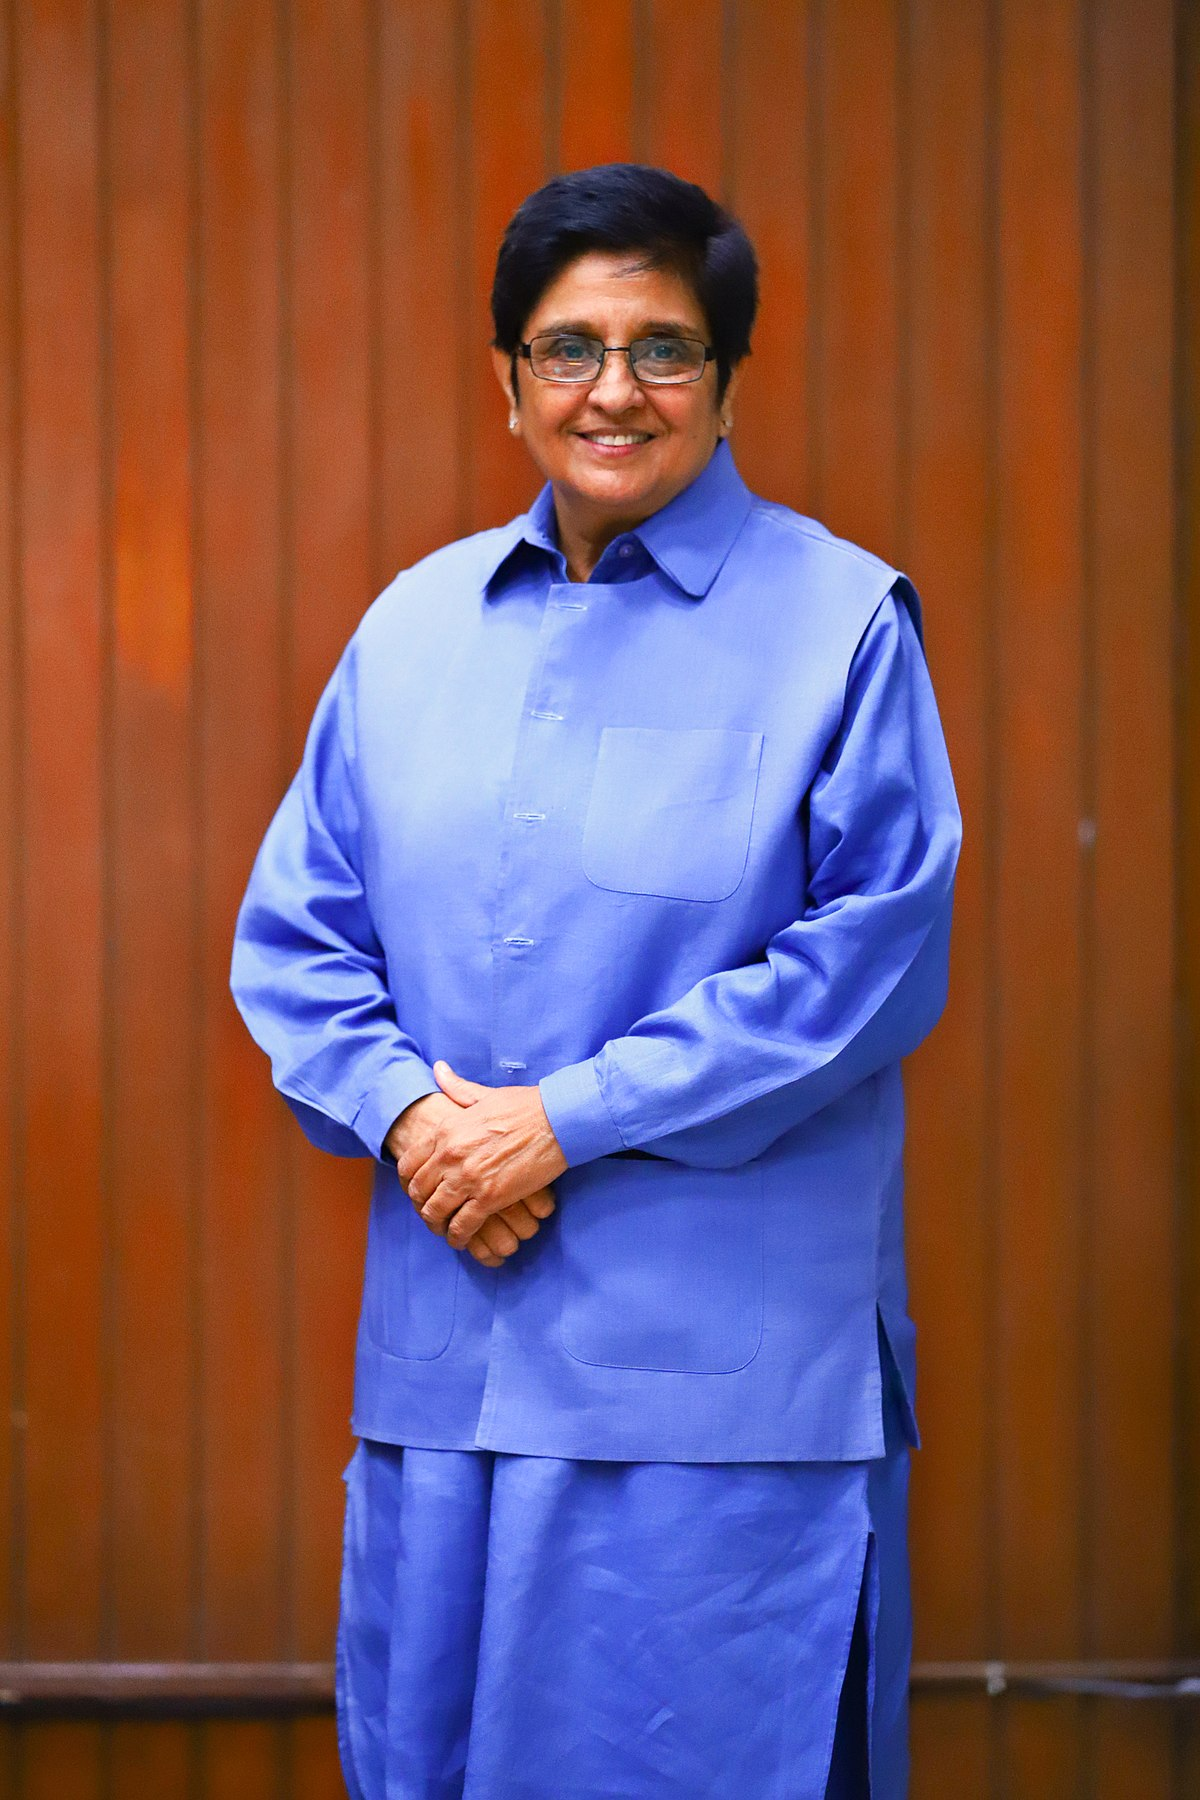 kkiran bedi Kiran bedi young unseen photofrom becoming the first woman to enter the ips which was otherwise known as a male domain to becoming bjp's cm candidate for the upcoming delhi elections, kiran bedi has indeed come a long way.